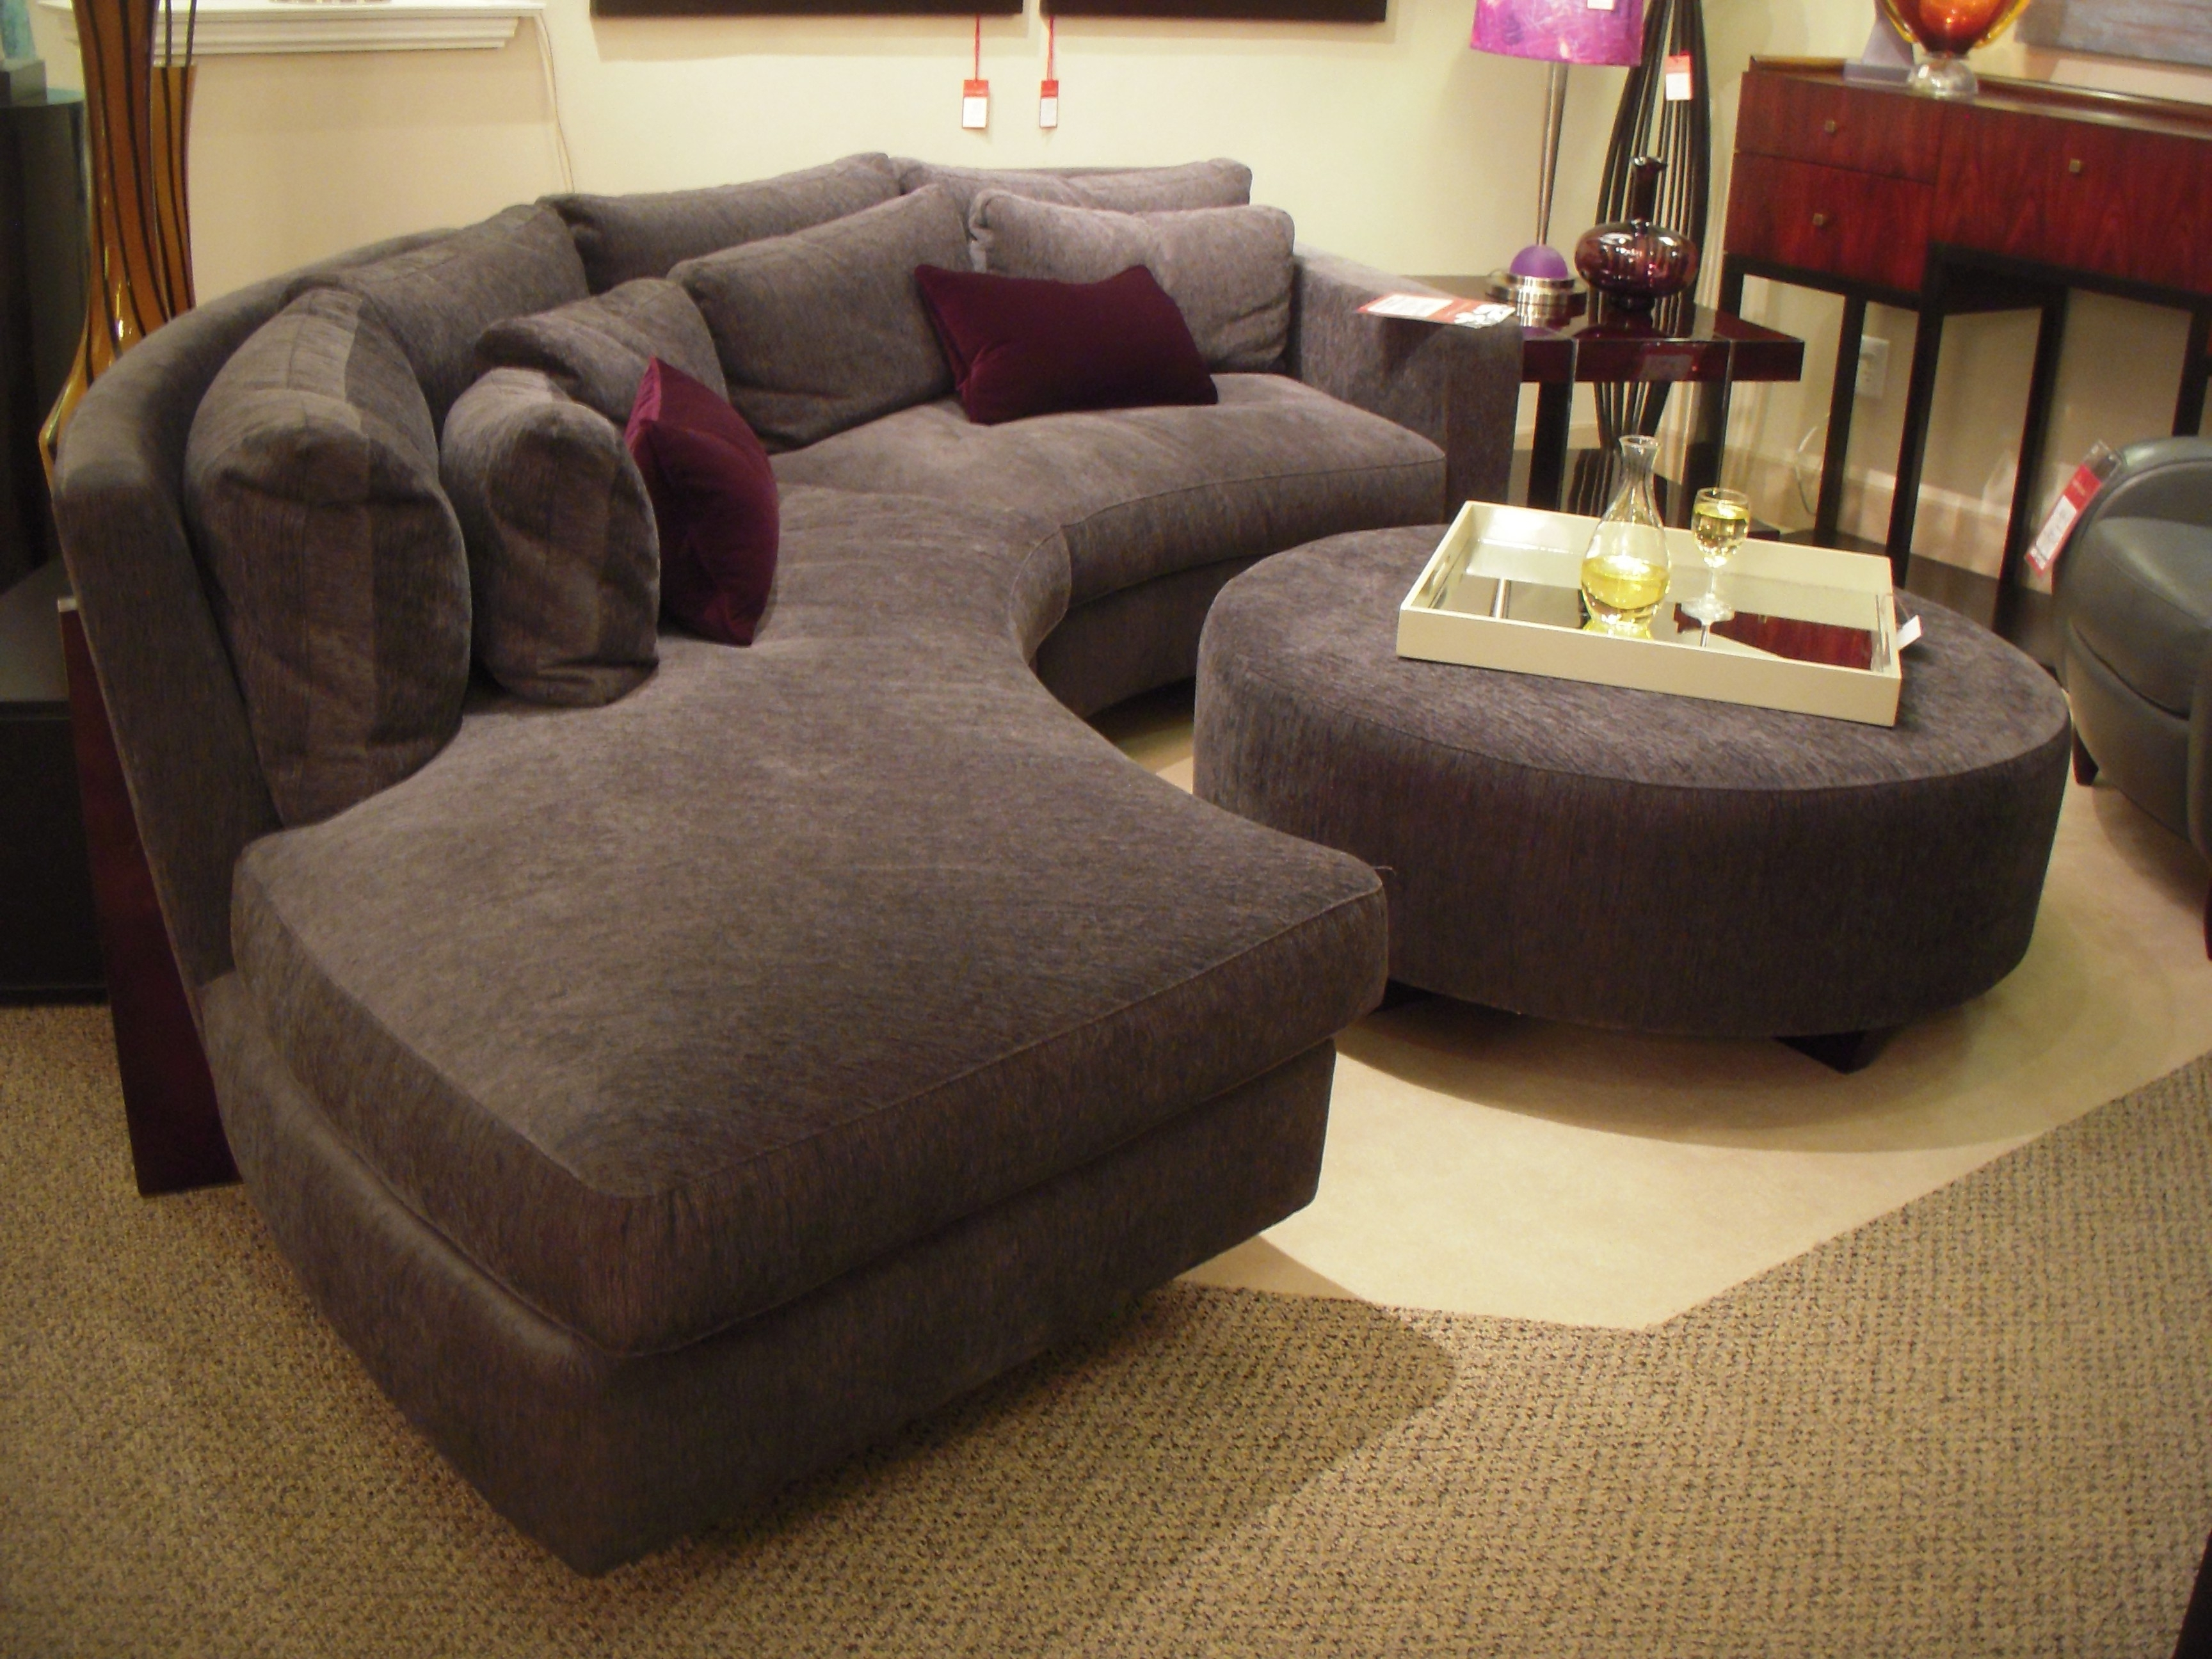 Preferred Unusual Sofas For Furniture : Beautiful Unique Sofa 62 Modern Ideas With And (View 7 of 15)